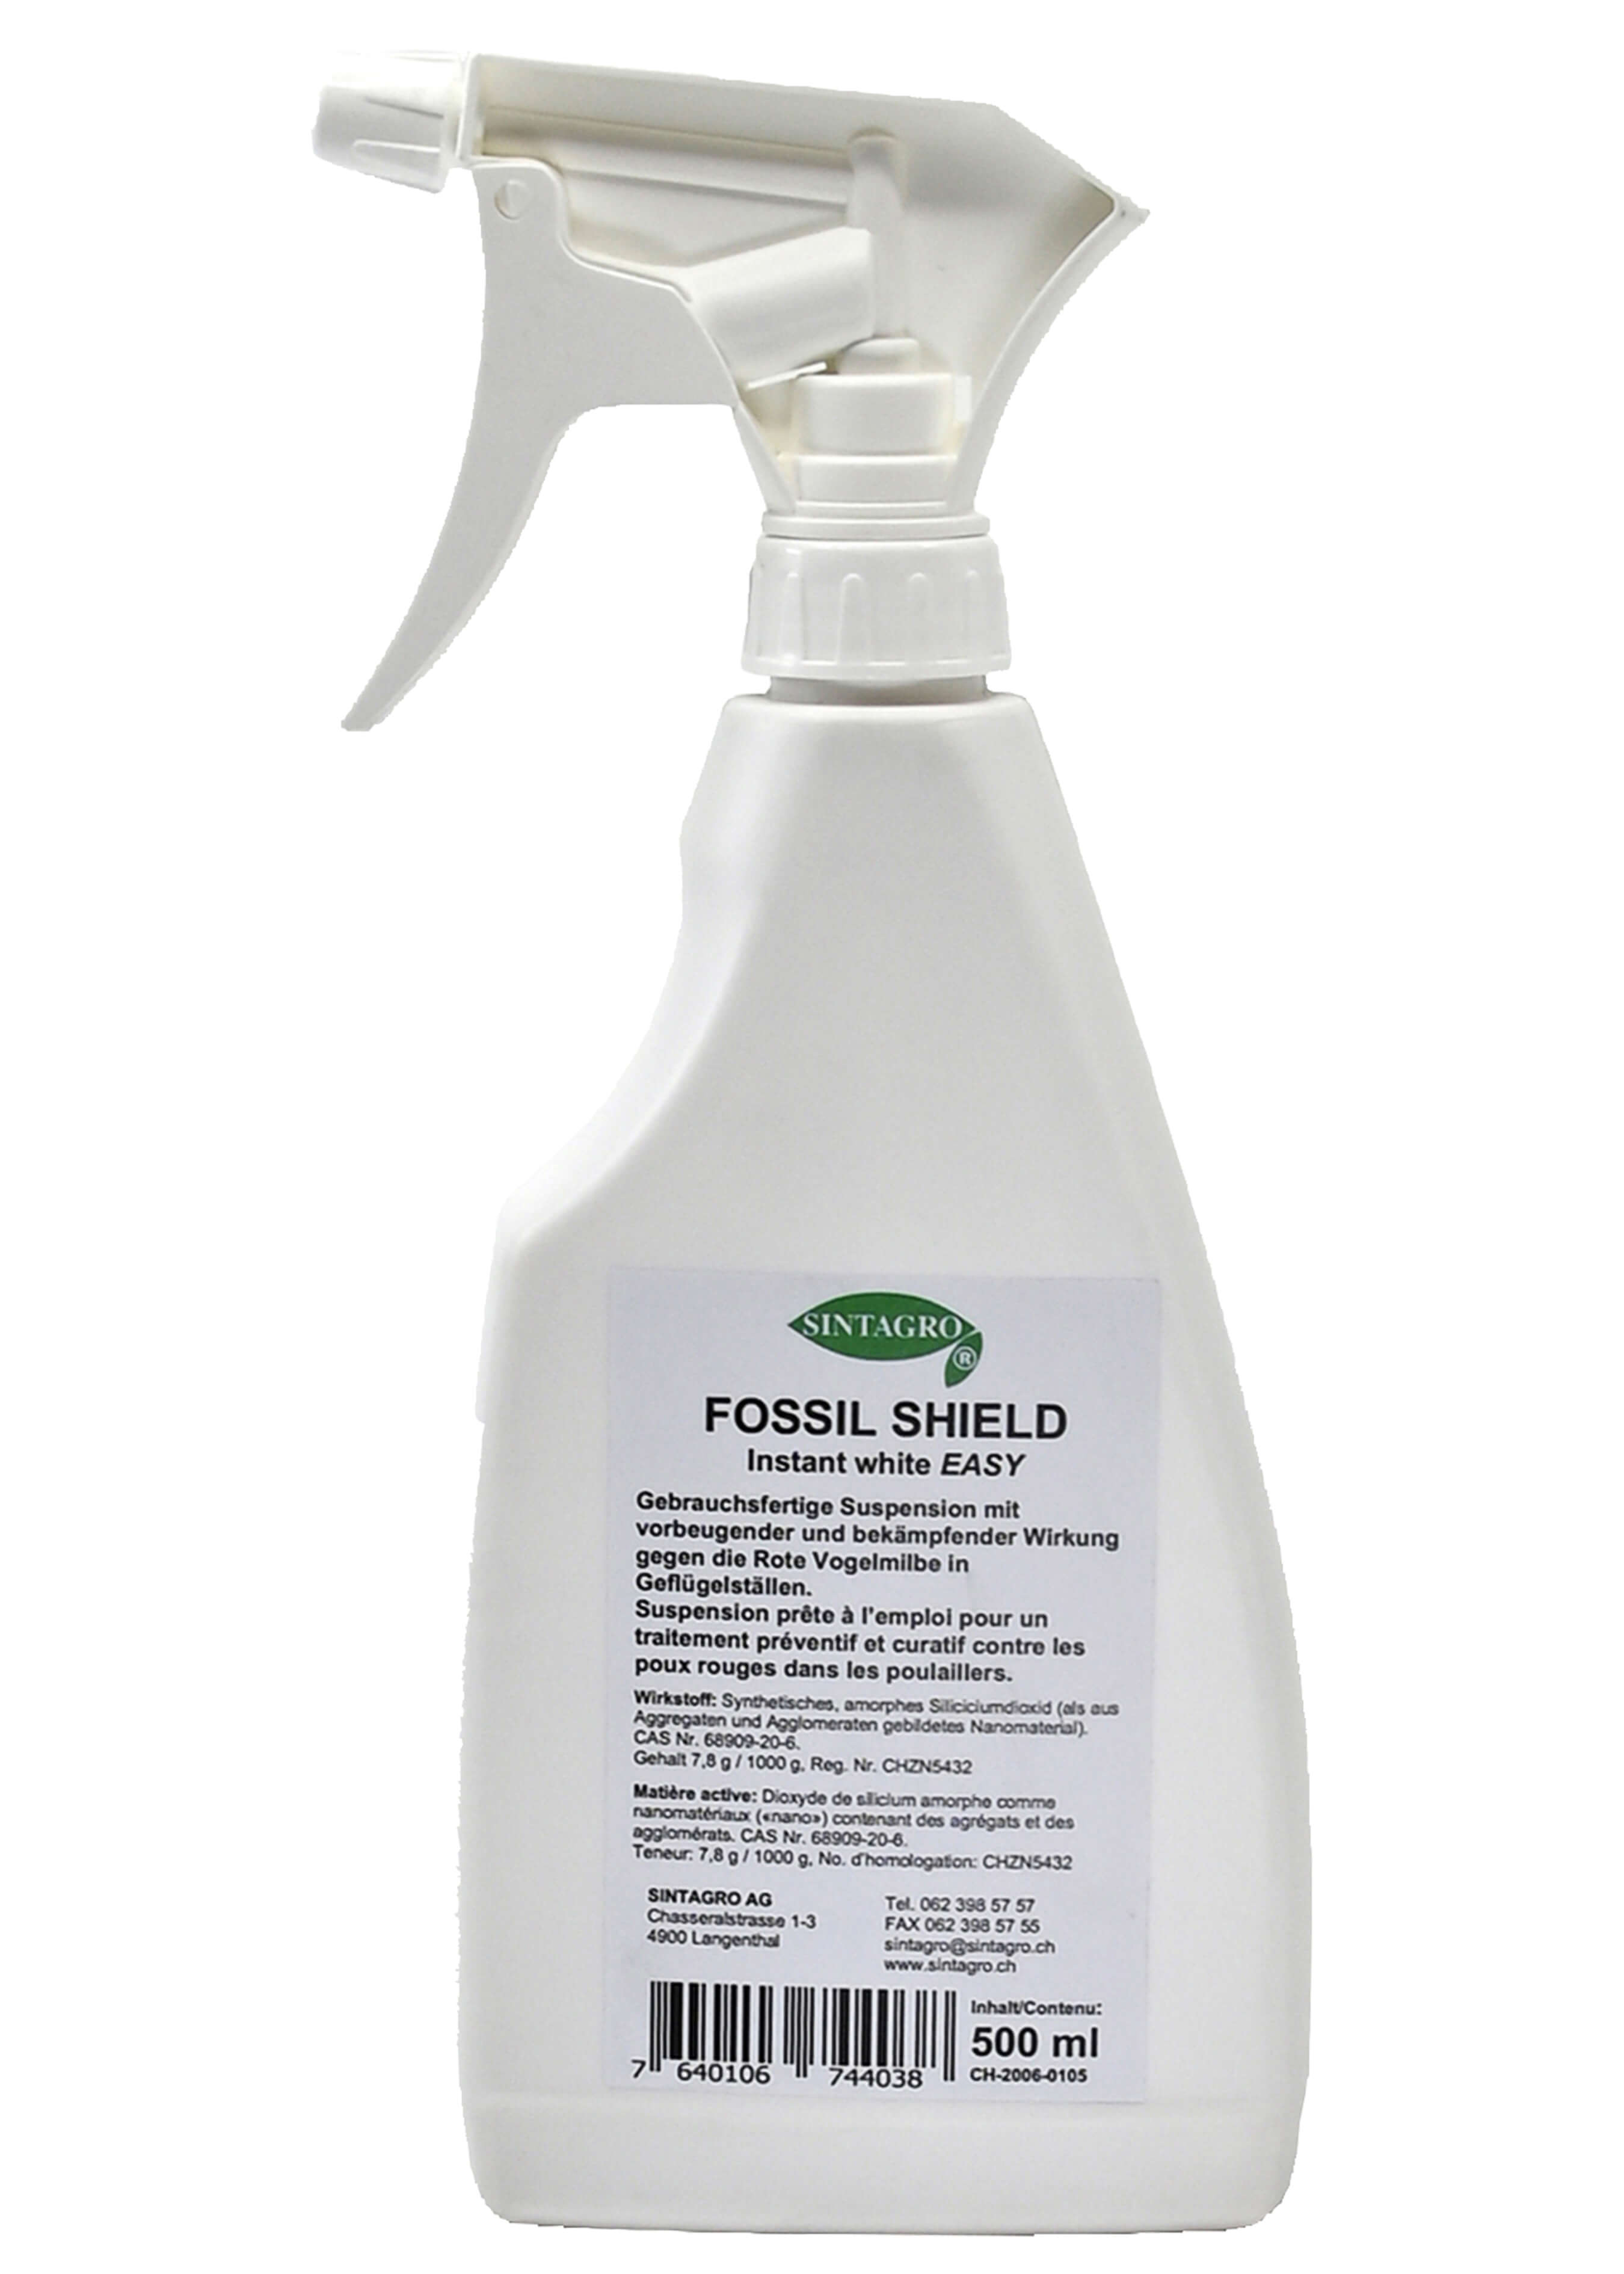 Fossil Shield instant white easy 281401 1